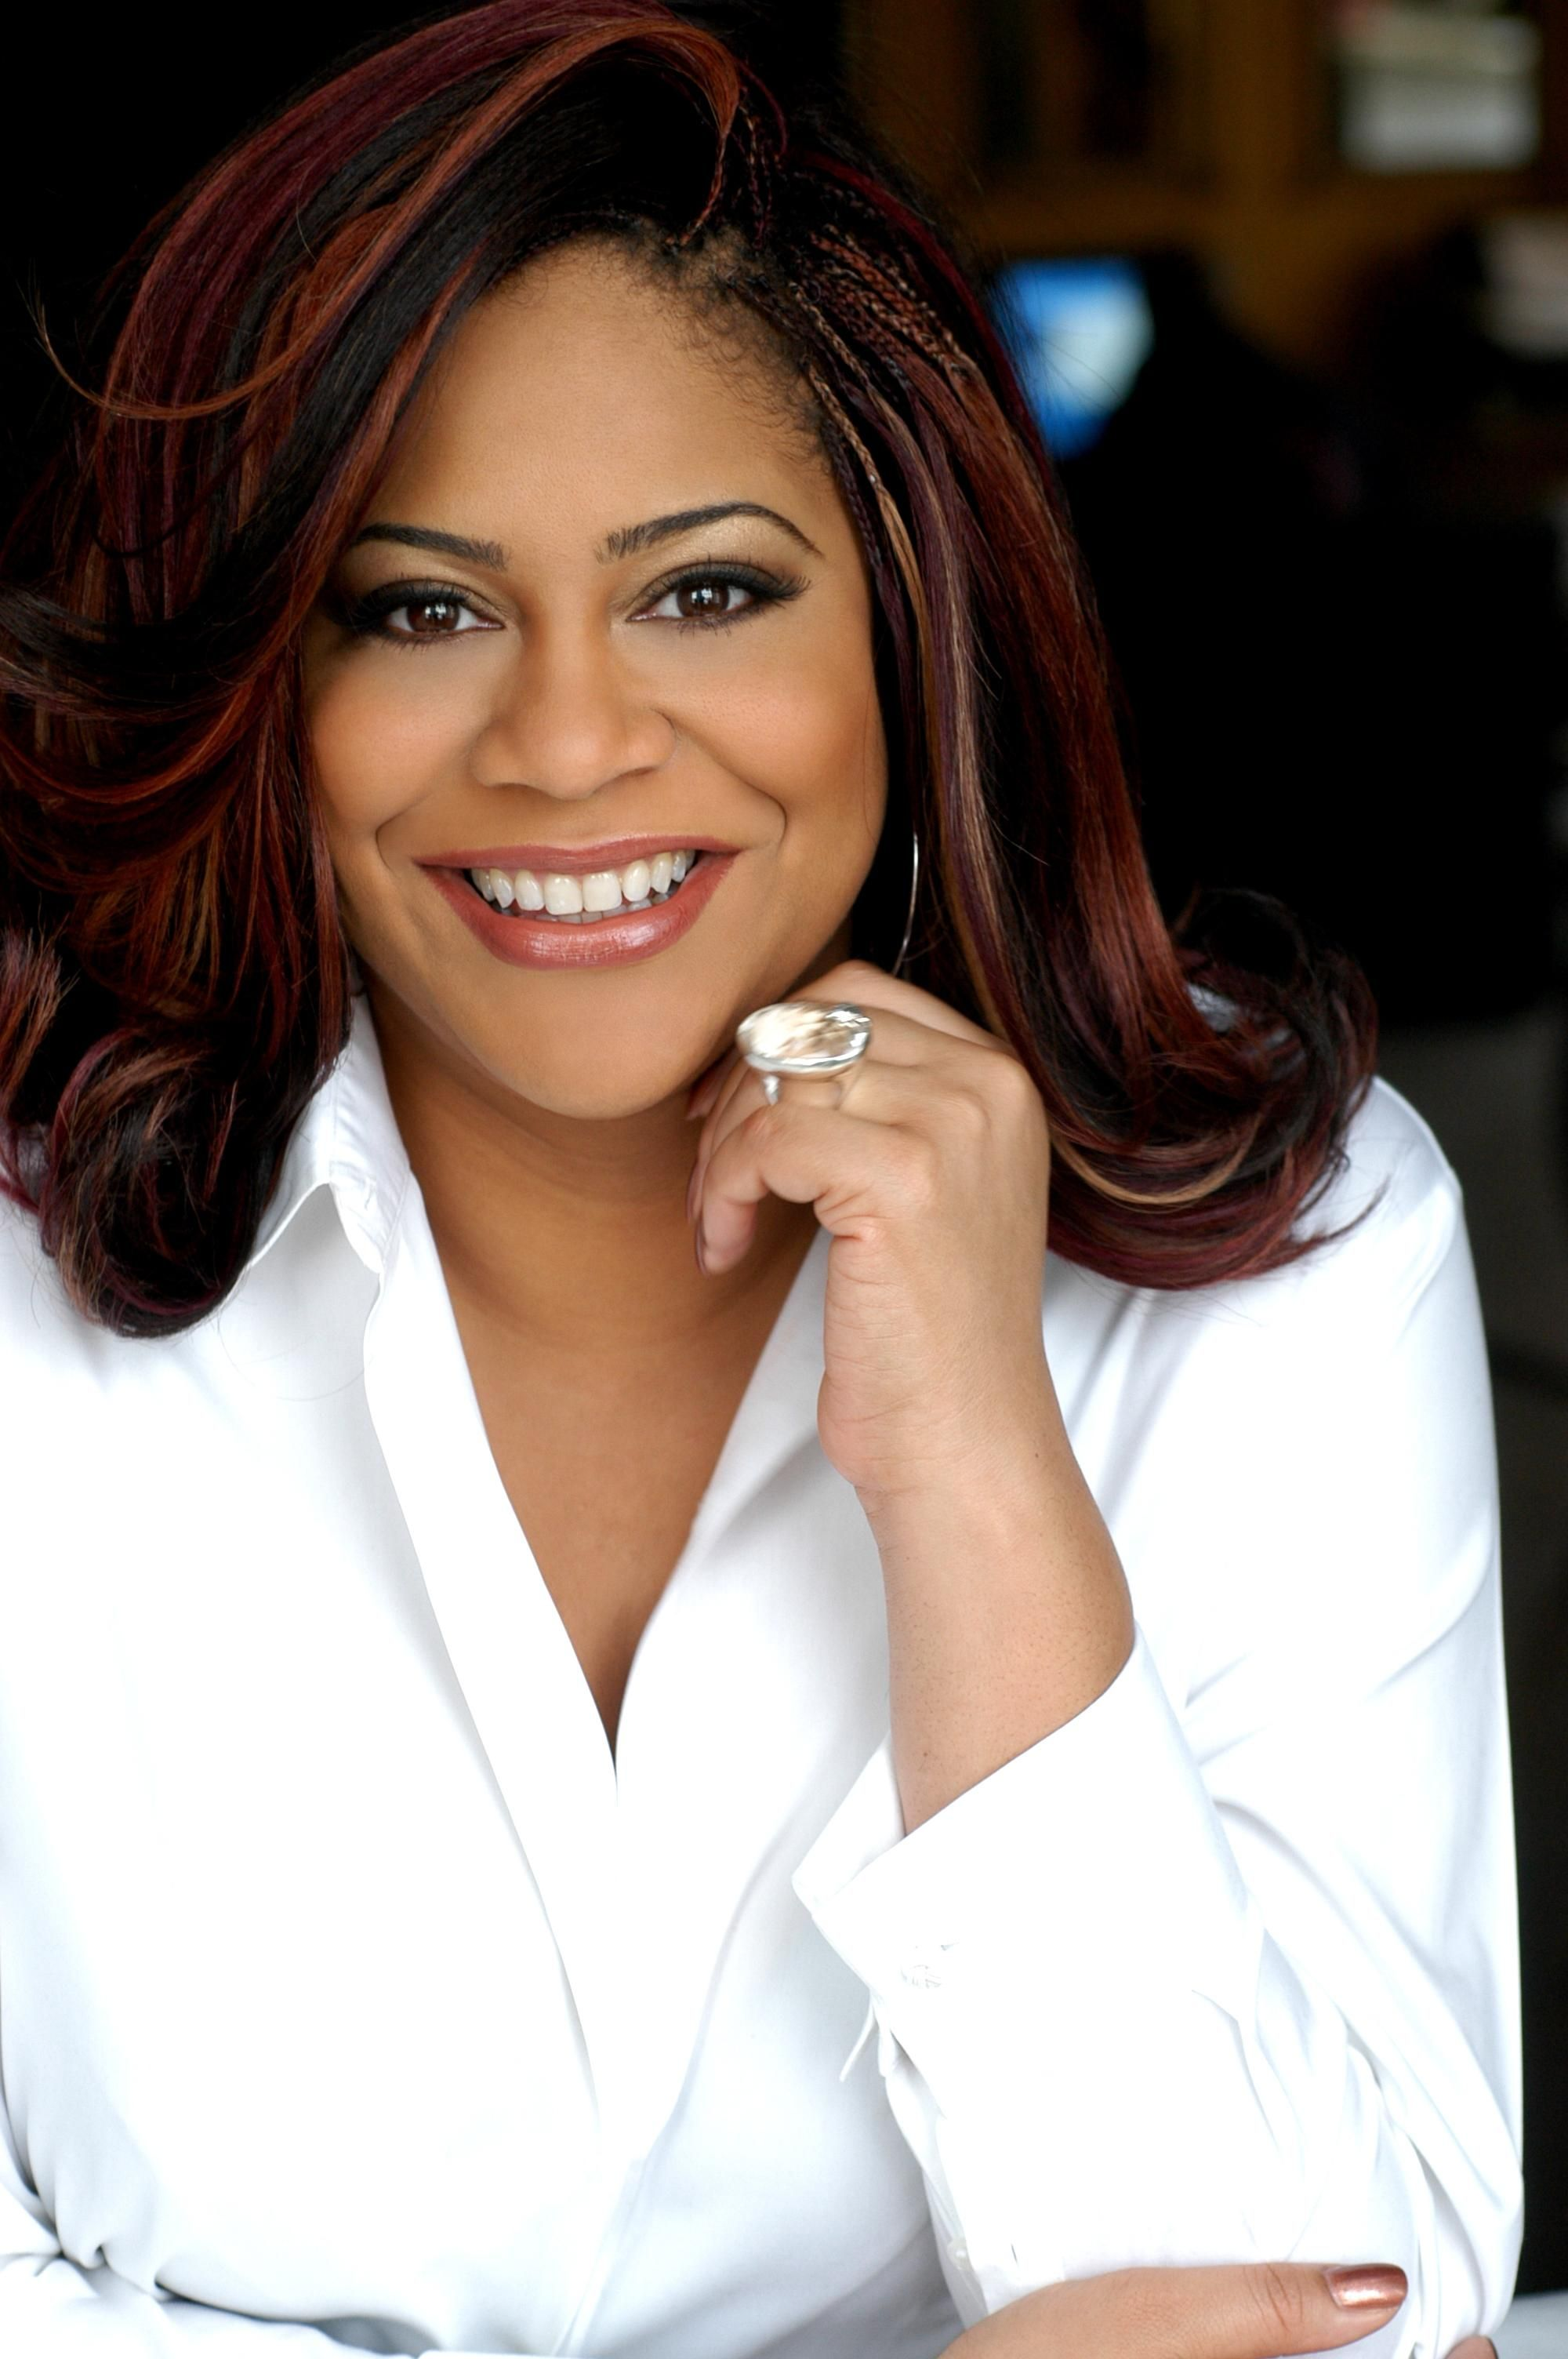 Sinclair Living Single : Kim Coles played Sinclair James on a 90's sitcome called ...